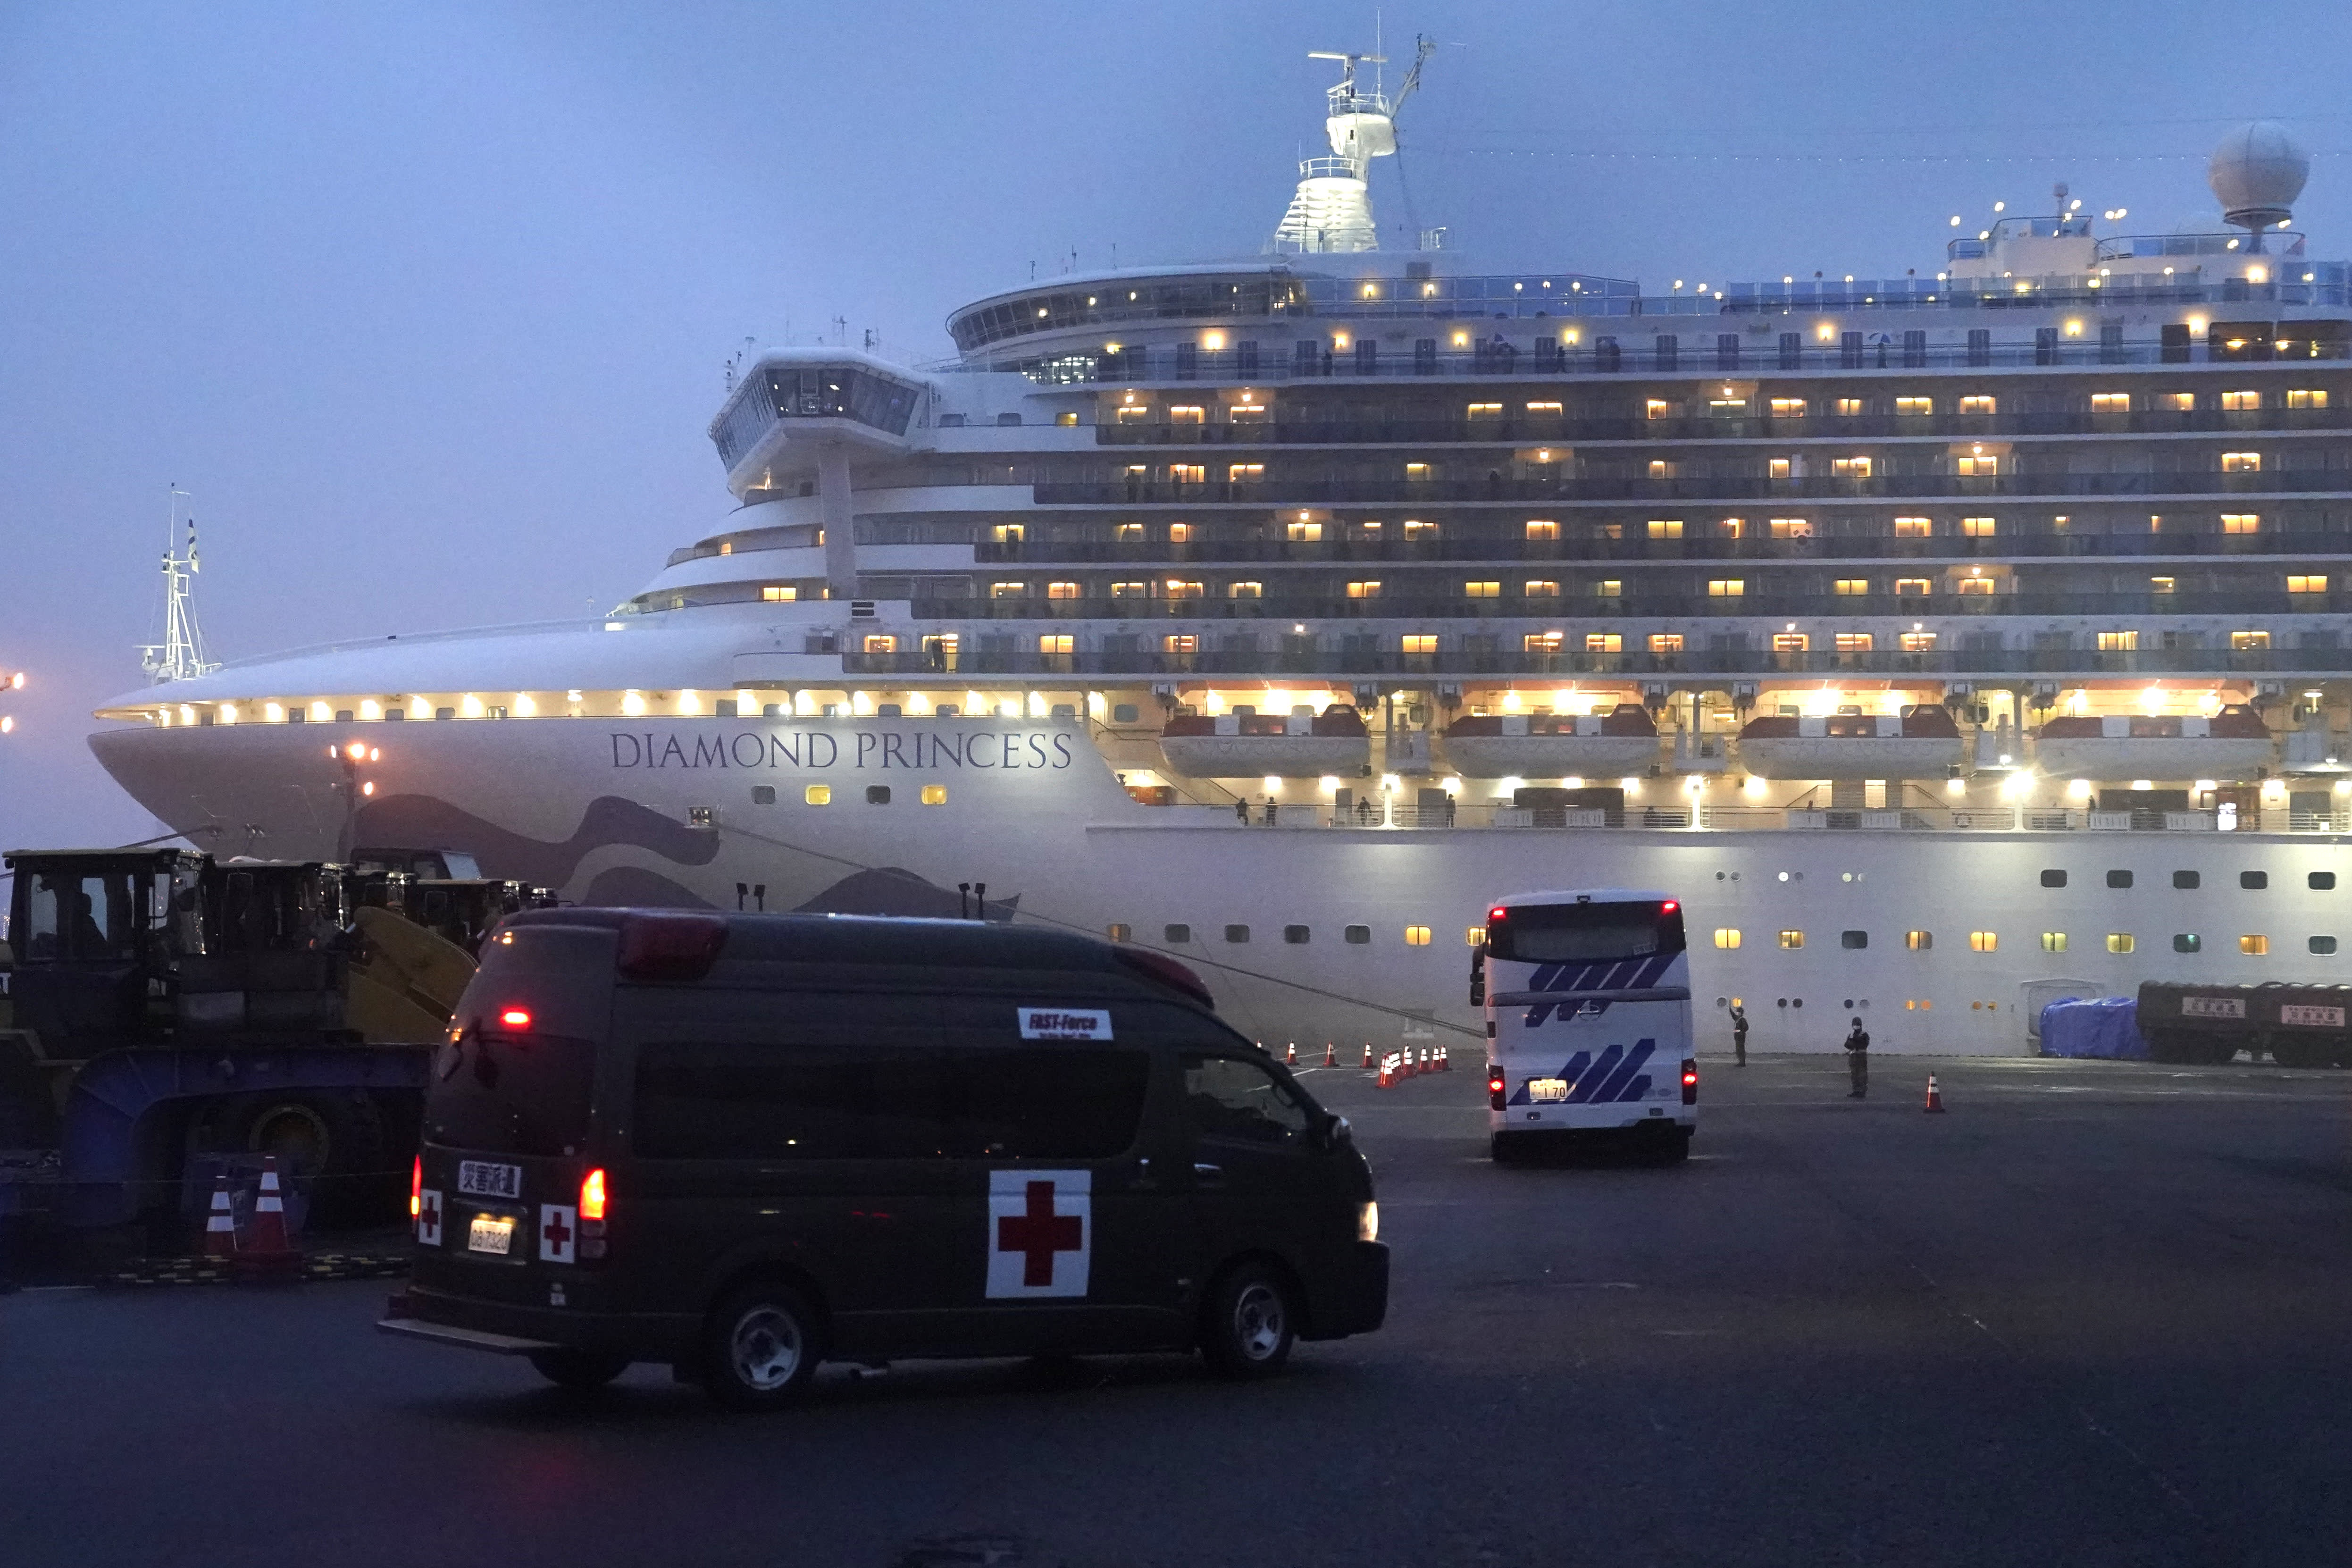 Coronavirus sent this couple into a 27-day quarantine after a cruise